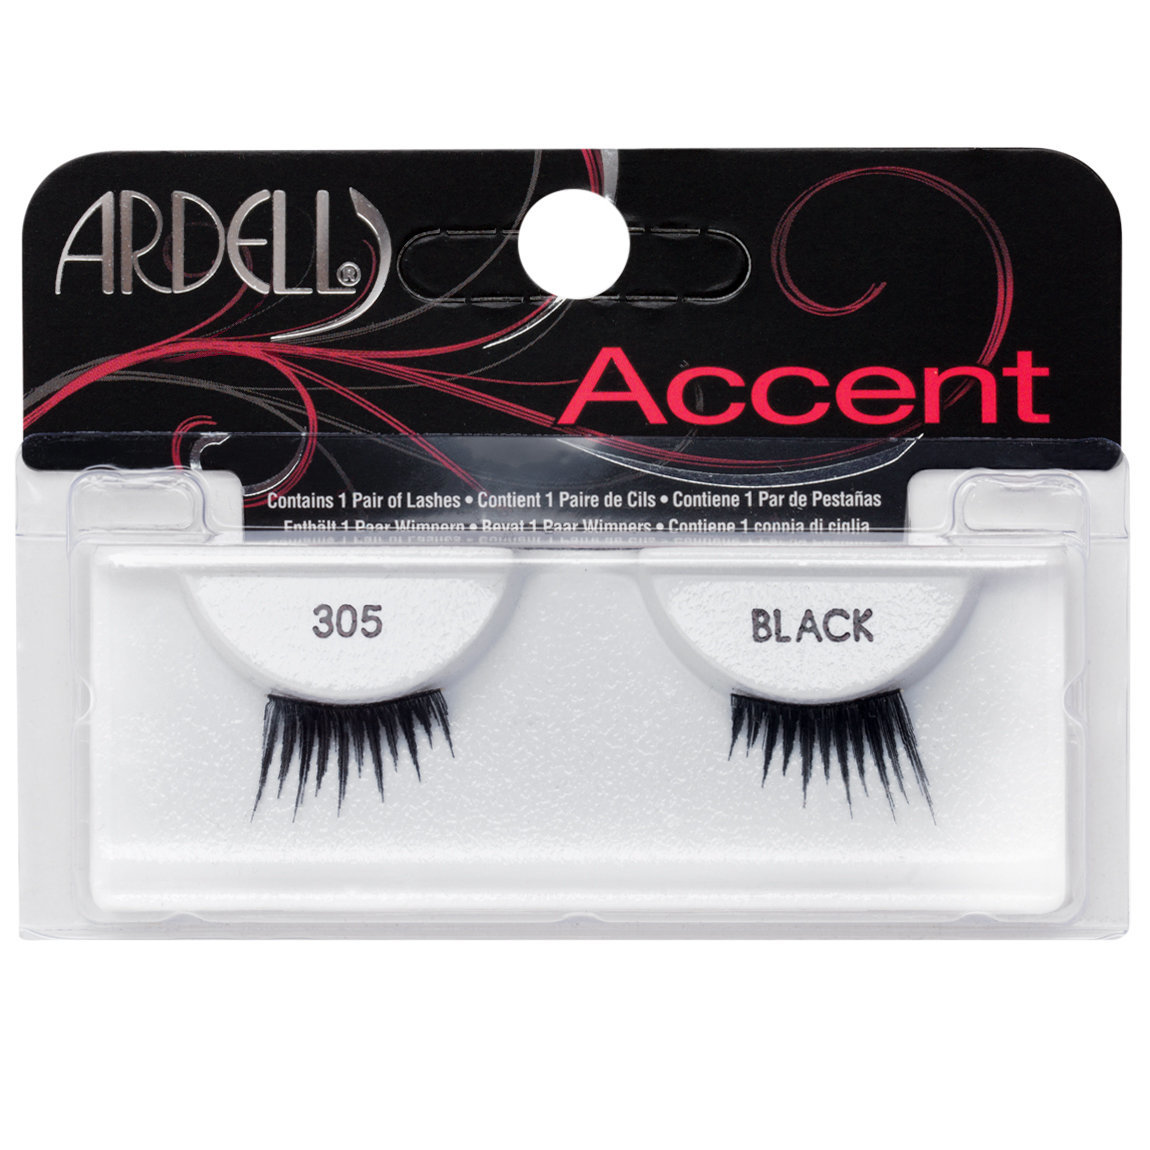 Ardell Accent Lashes 305 Black alternative view 1.